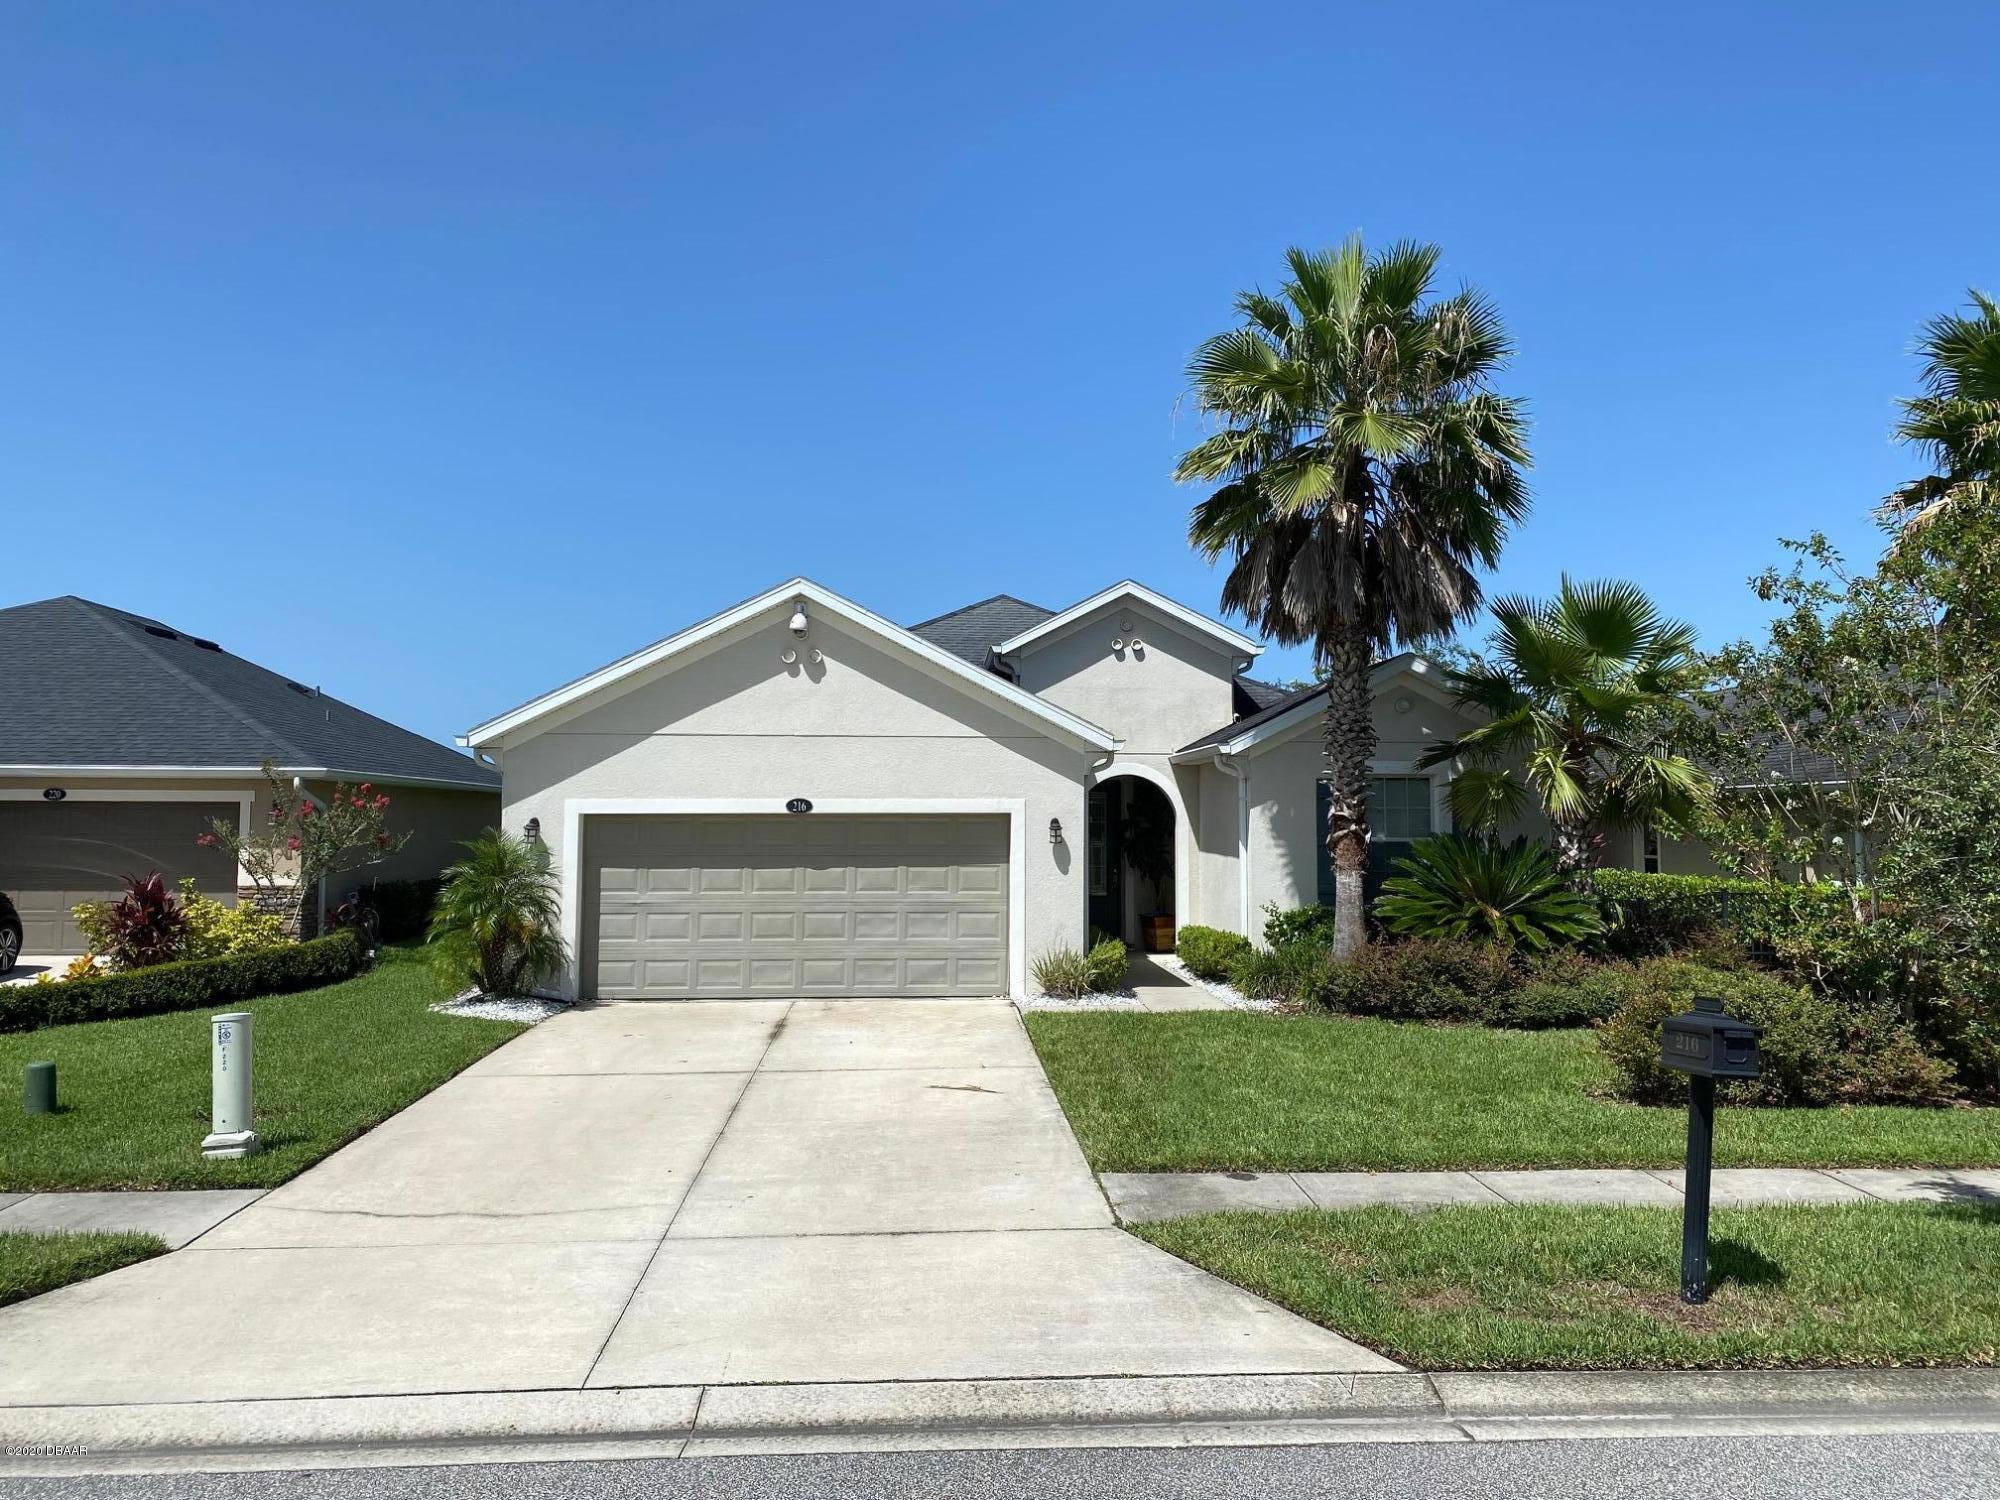 Details for 216 Grande Sunningdale Loop, Daytona Beach, FL 32124